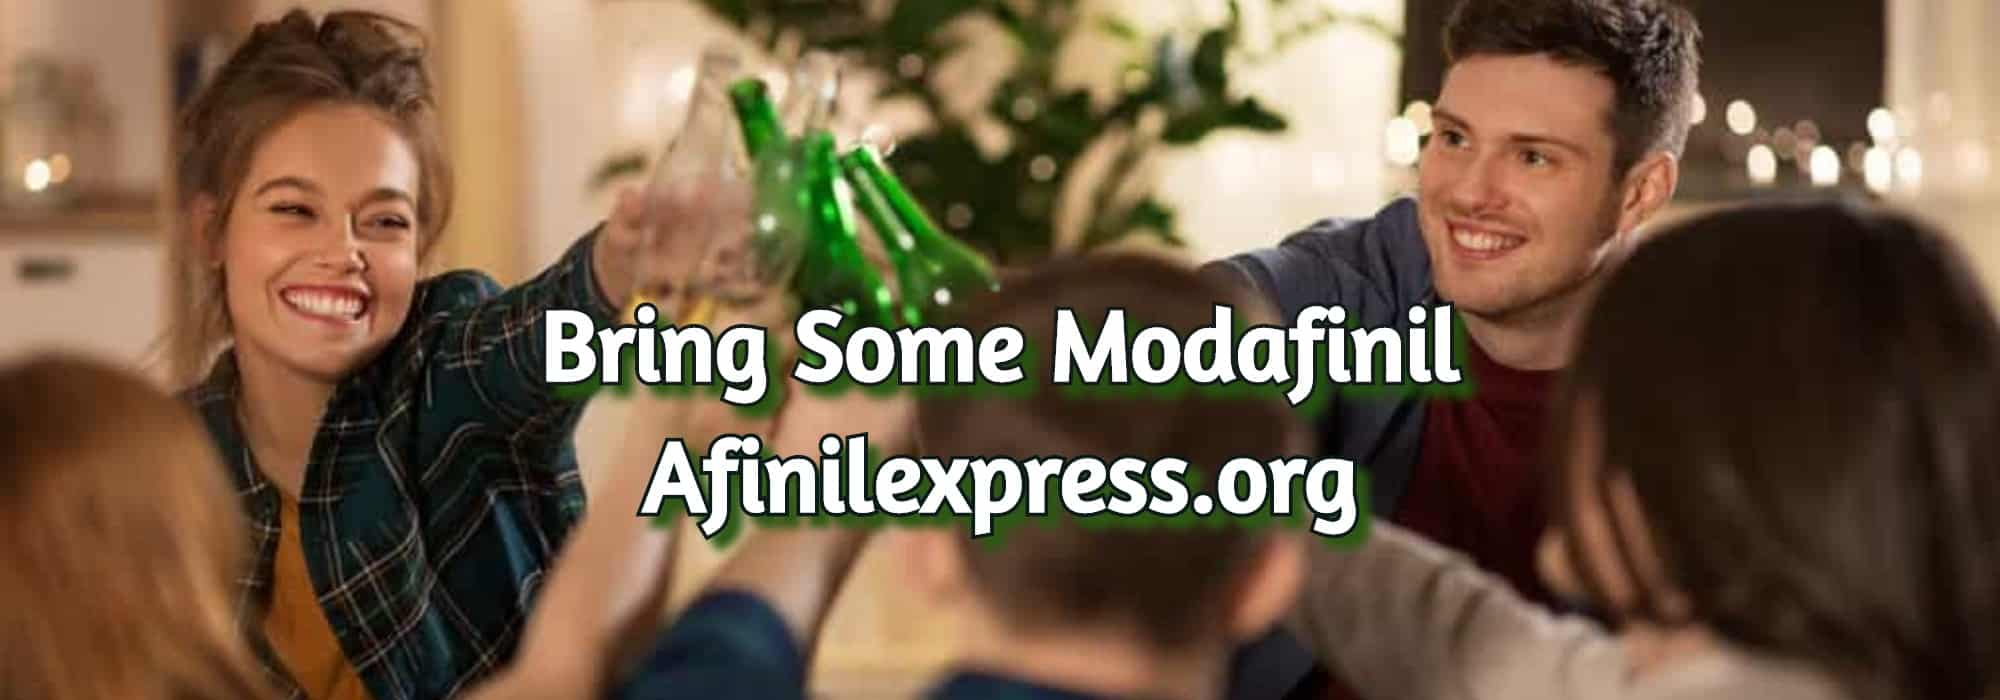 Bring Some Modafinil, afinilexpress.org